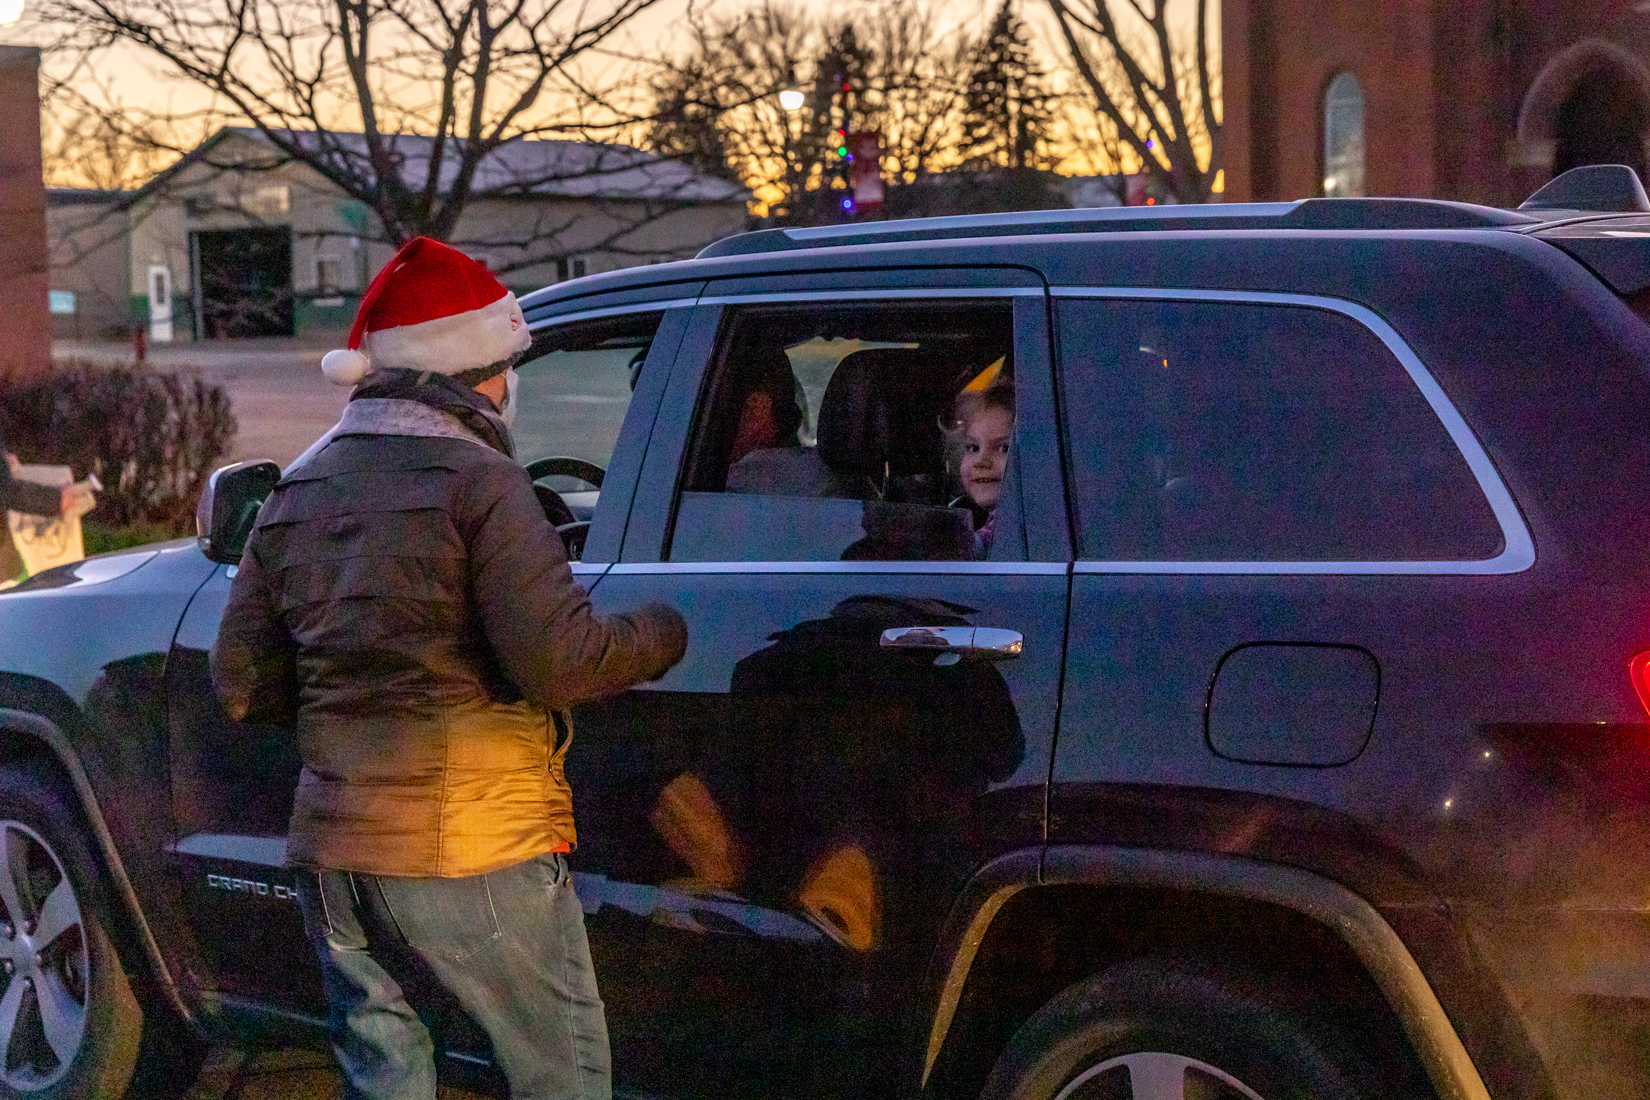 After visiting with Santa, area kids received a goodie bag.